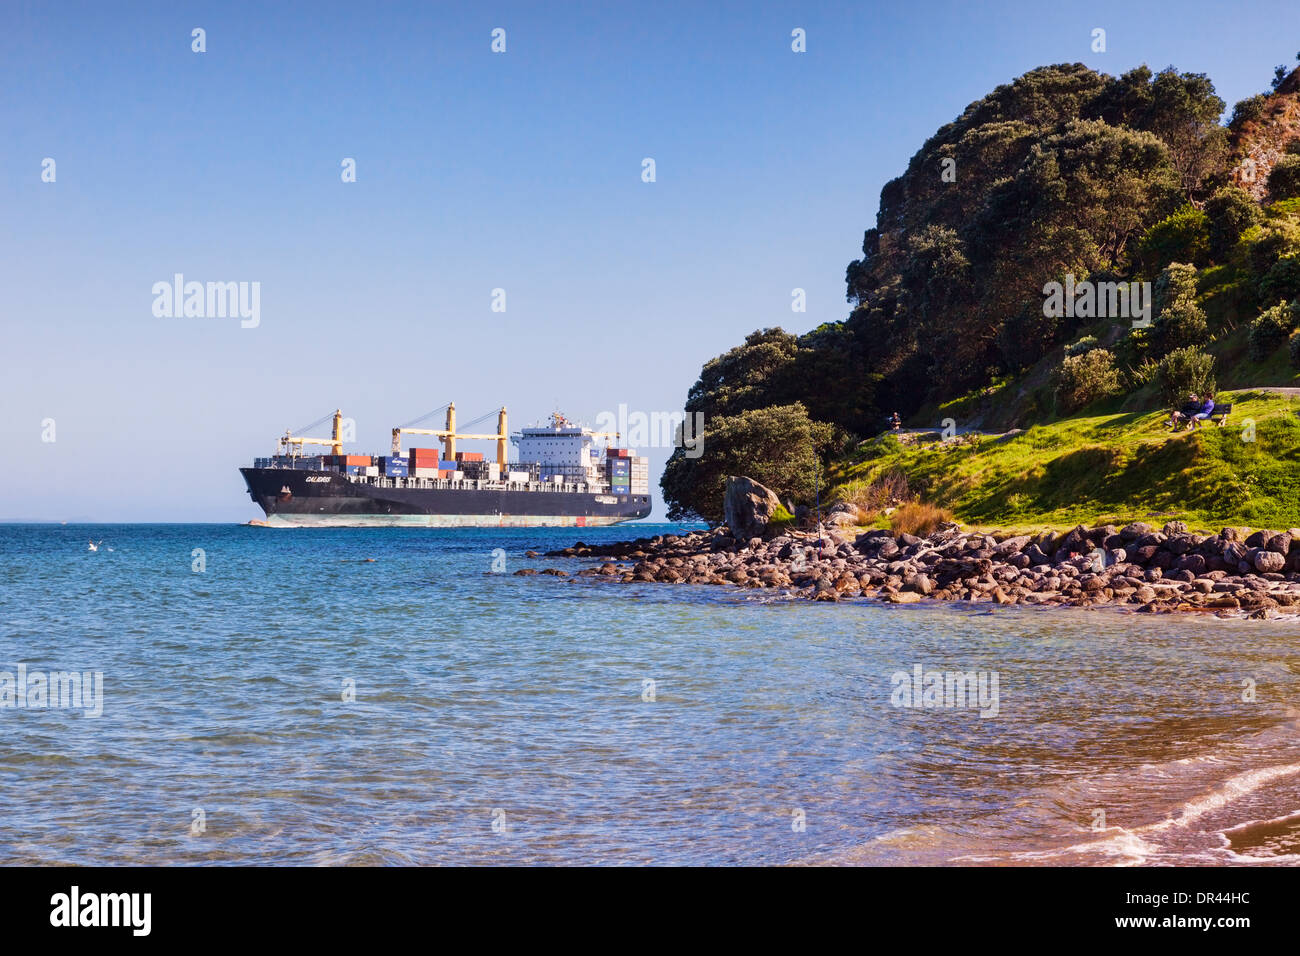 Container ship Calidris rounding the point at Mount Maunganui, as it makes its way into Tauranga Port. - Stock Image